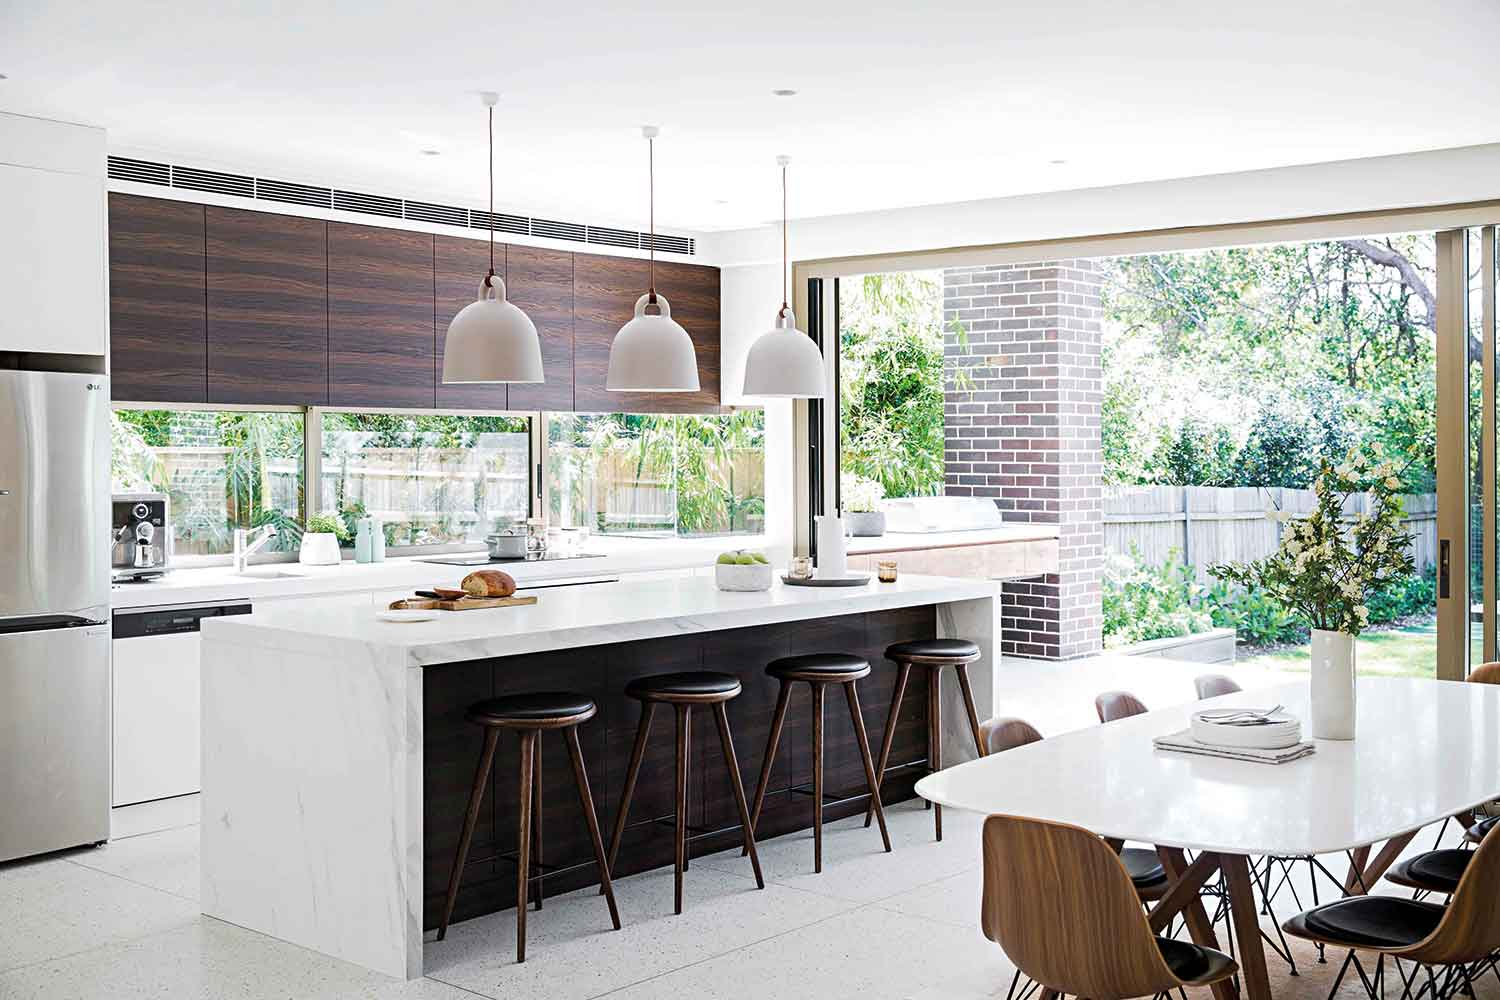 8 genius kitchen islands that steal the show | Home ...